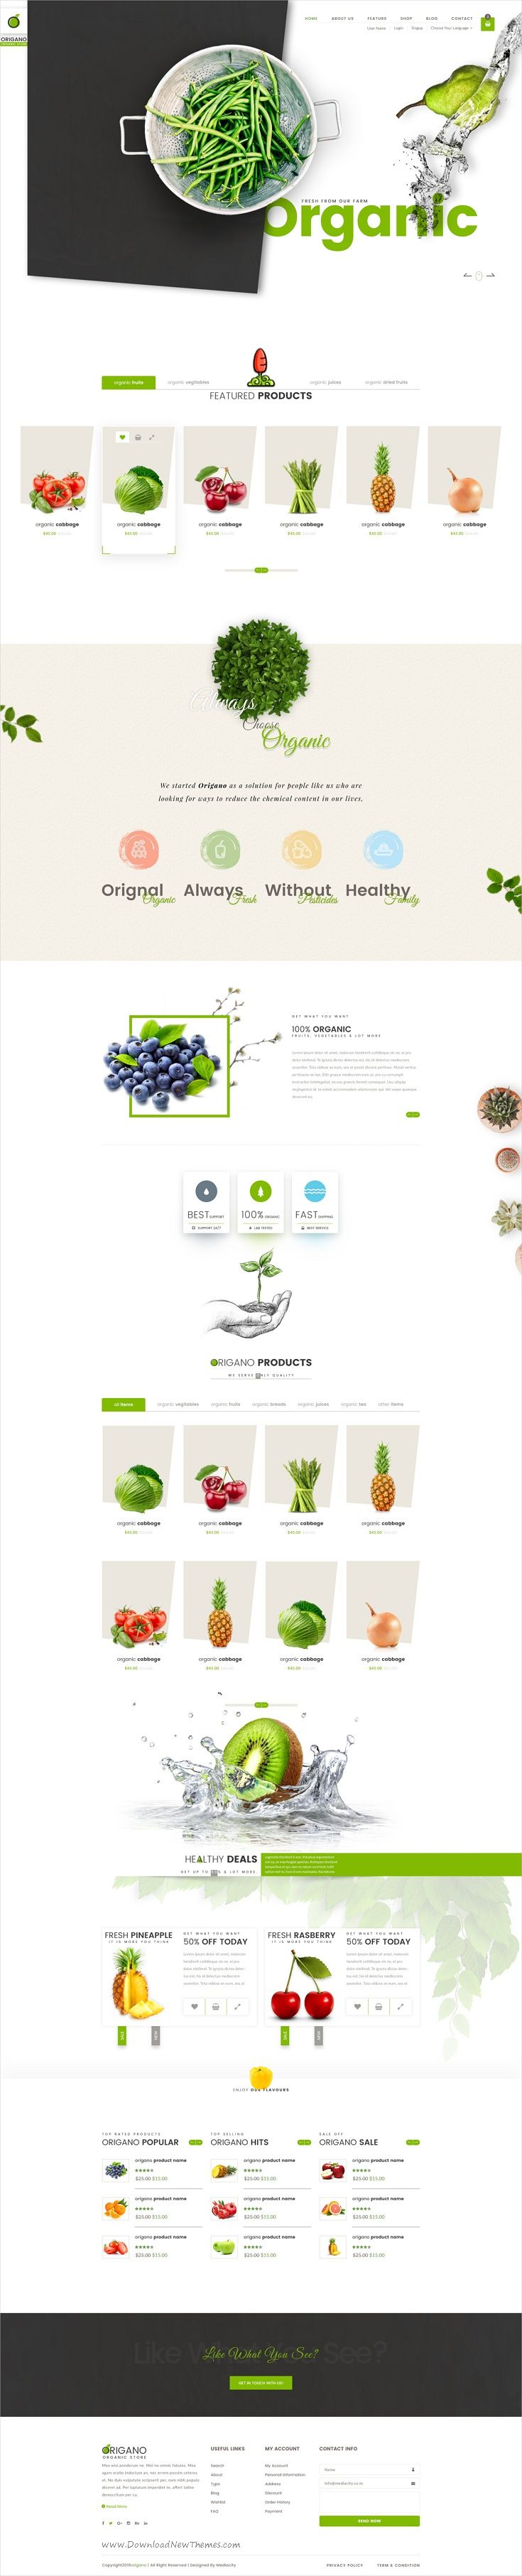 Origano is a beautiful design #PSD template for #organic, food, farming #store eCommerce website with 6 homepage layouts and 39 organize PSD pages download now➩ https://themeforest.net/item/origano-organic-store-psd-template/19478208?ref=Datasata